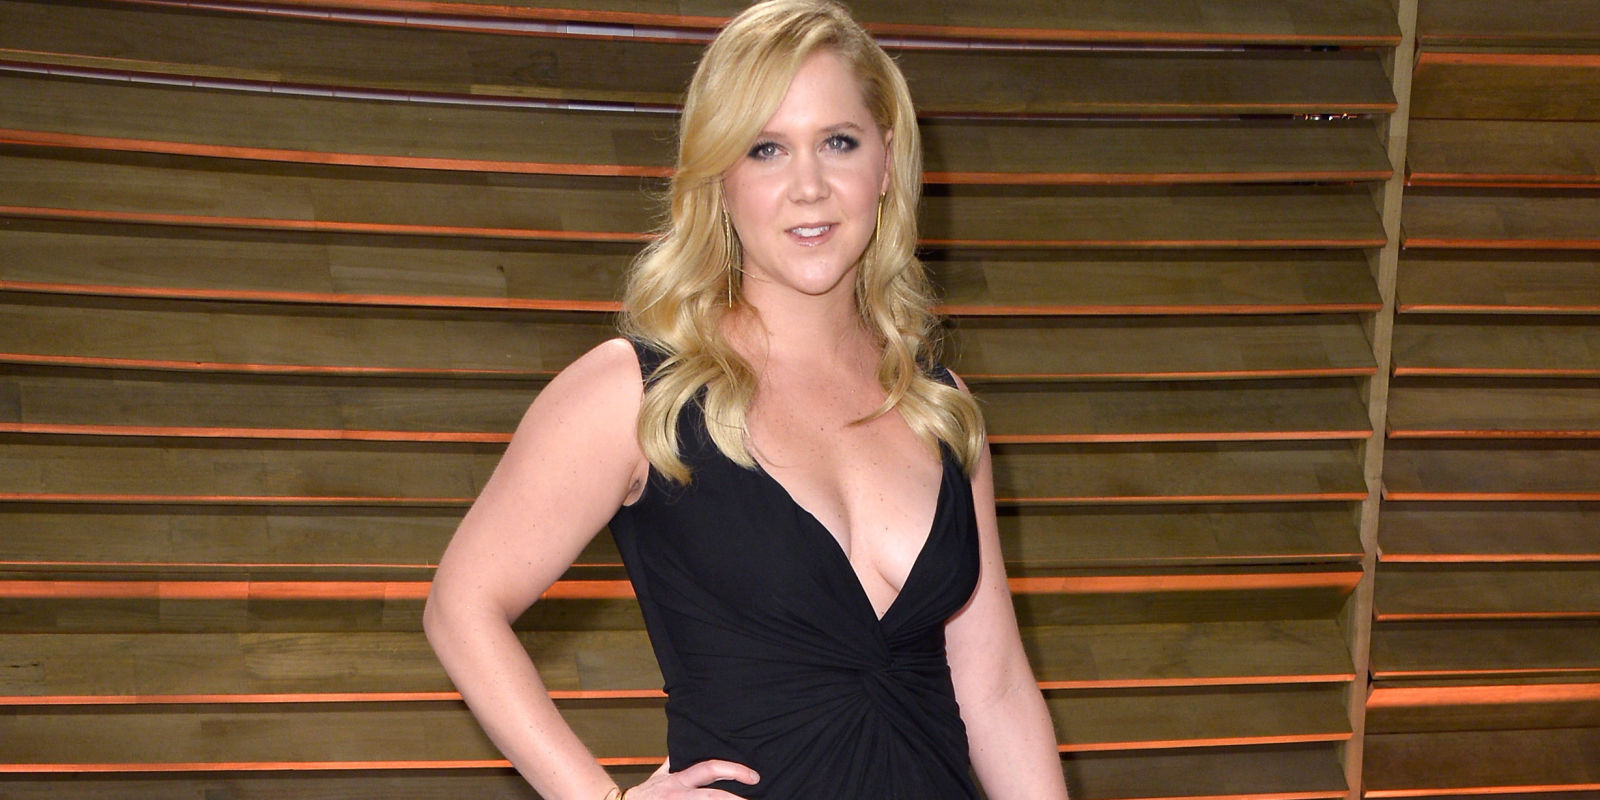 hot fake nude pics of amy schumer